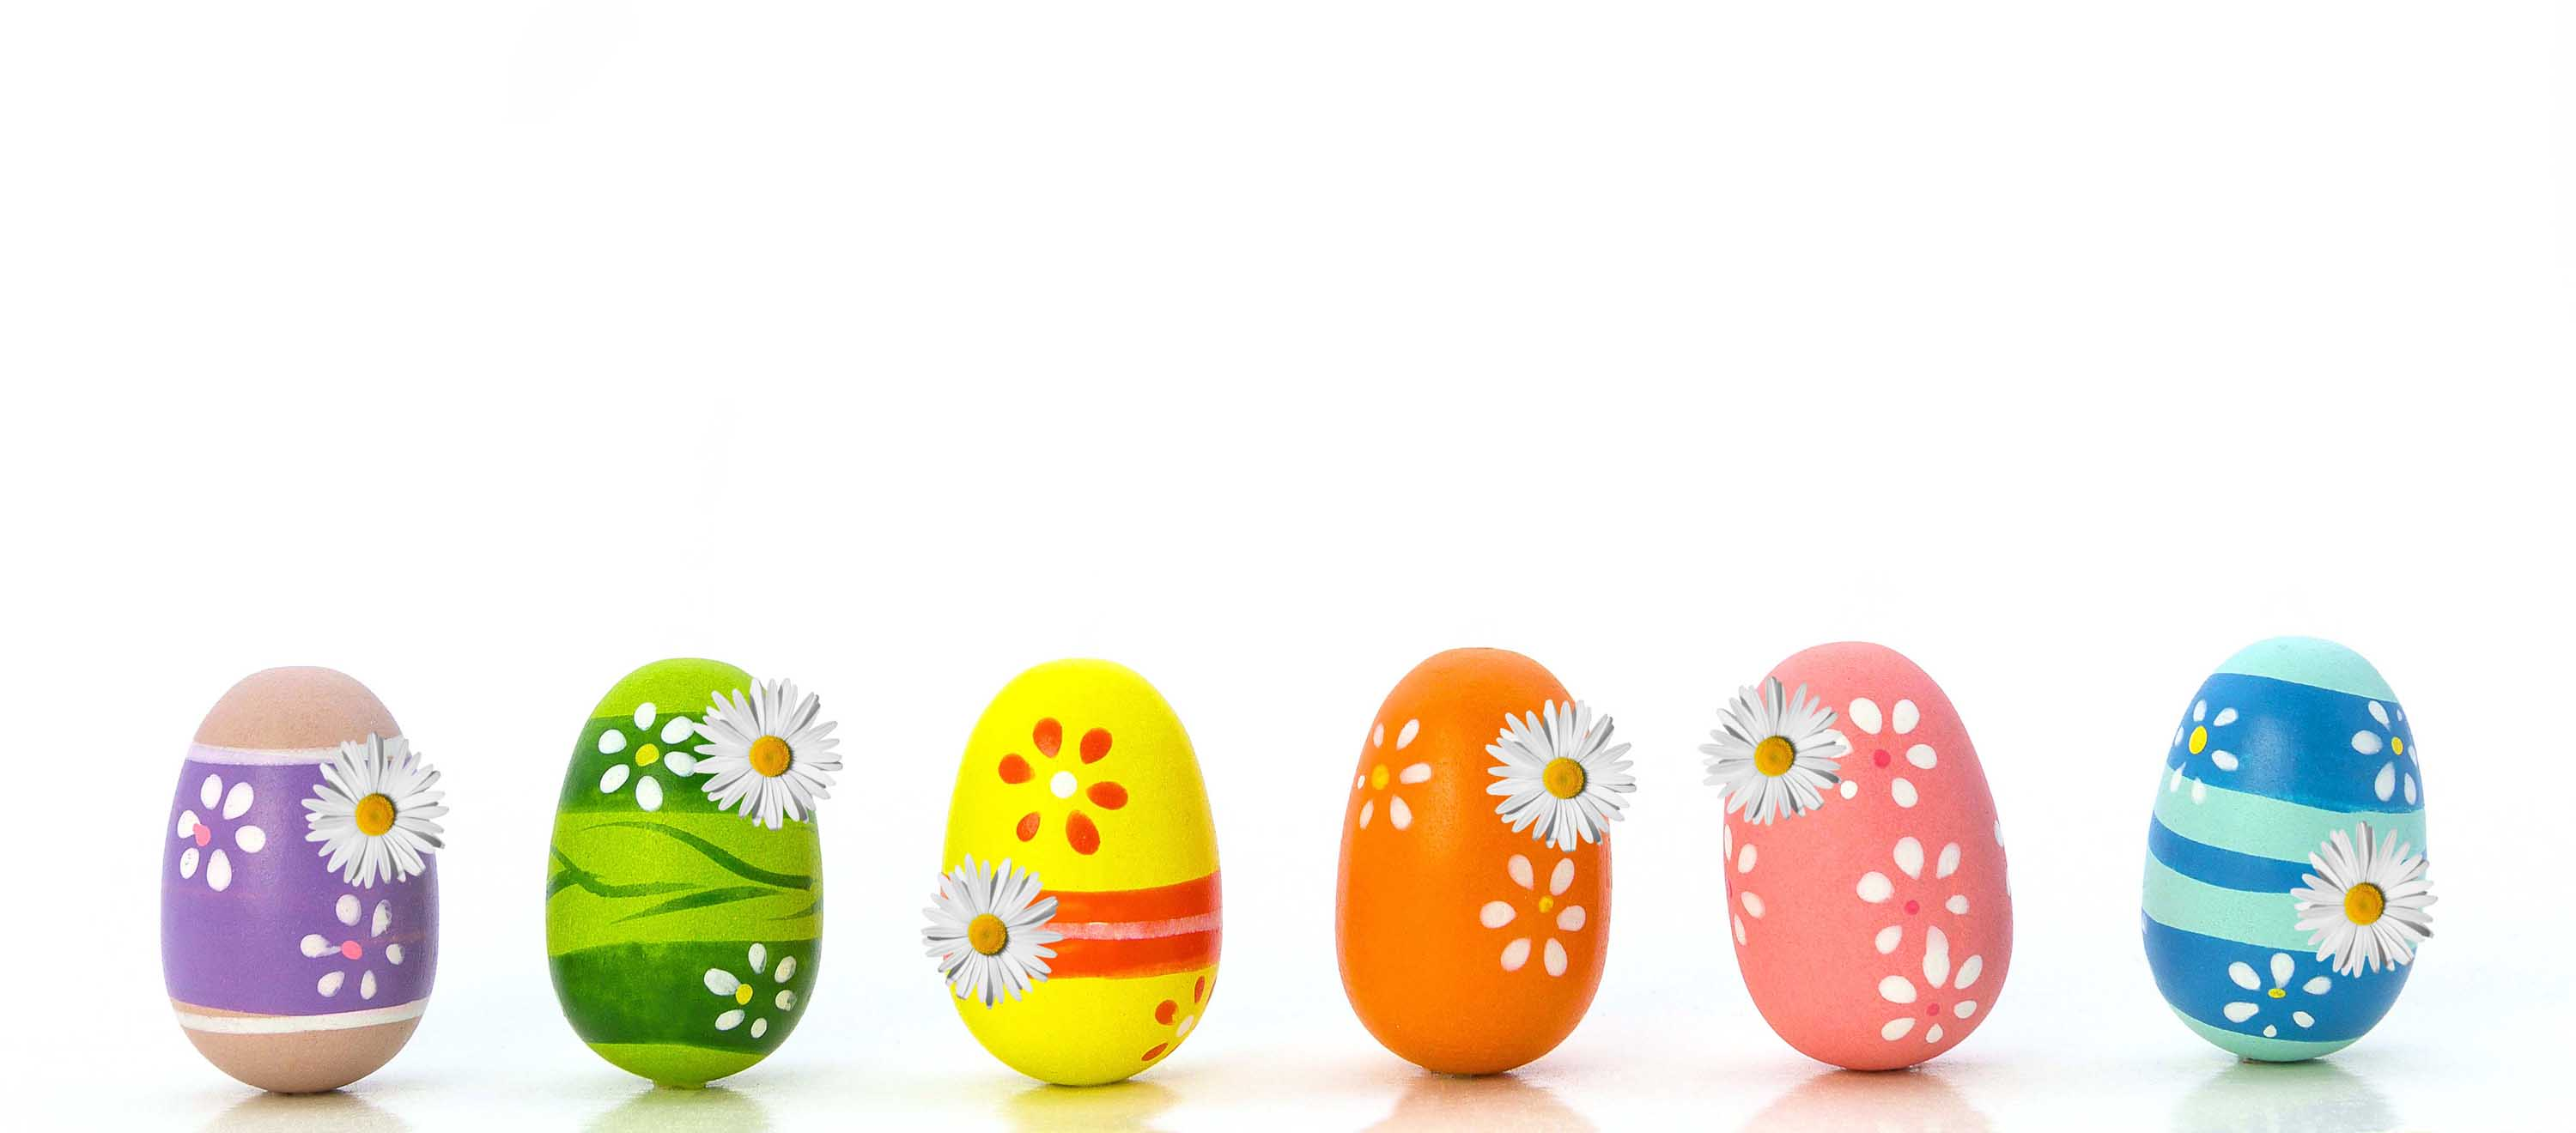 Easter,Desktop,Background,Designs,Eggs